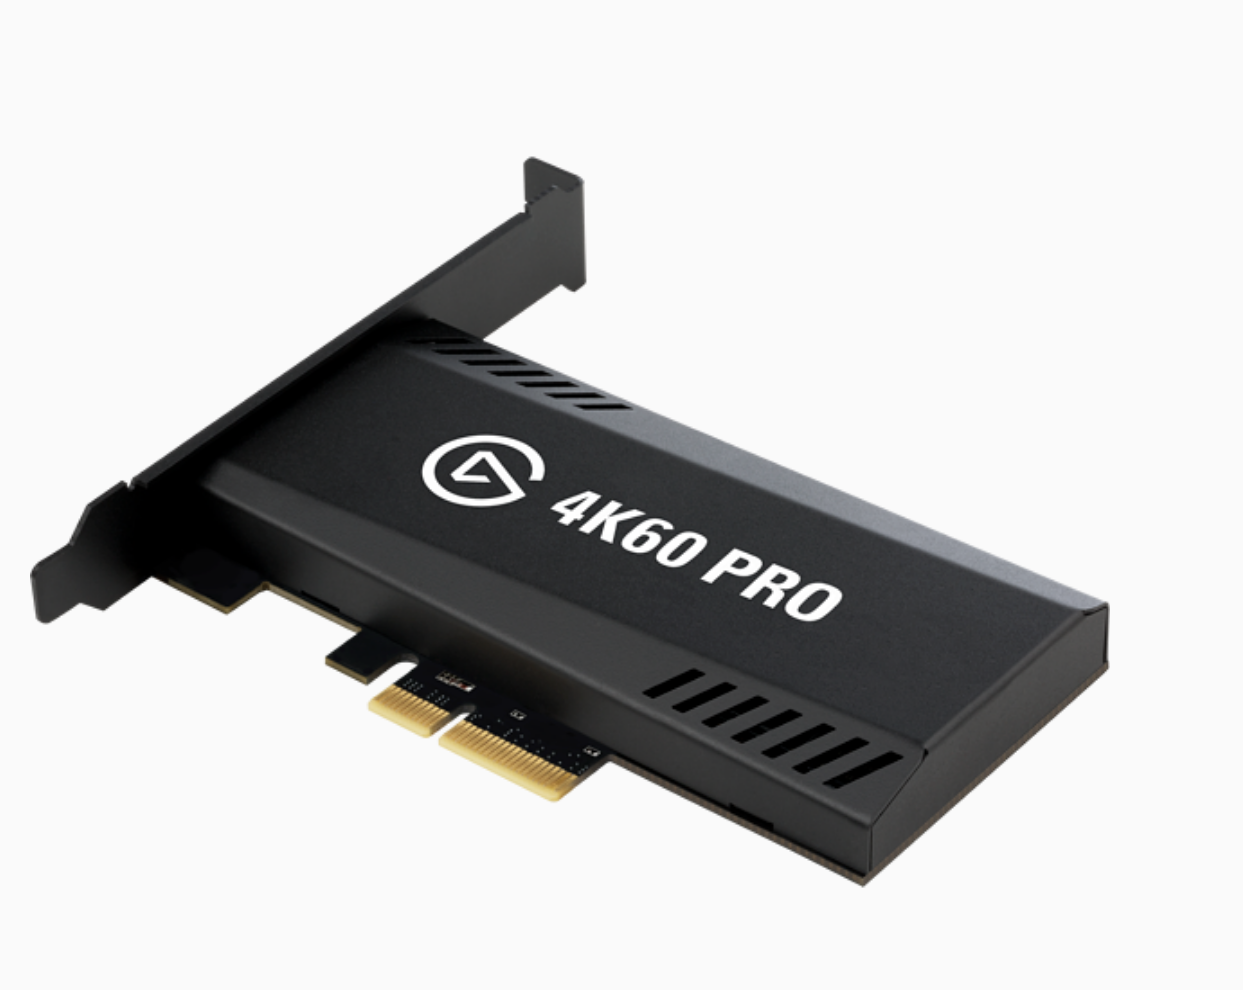 Elgato Game Capture 4K60 Pro MK 2 - What is the difference